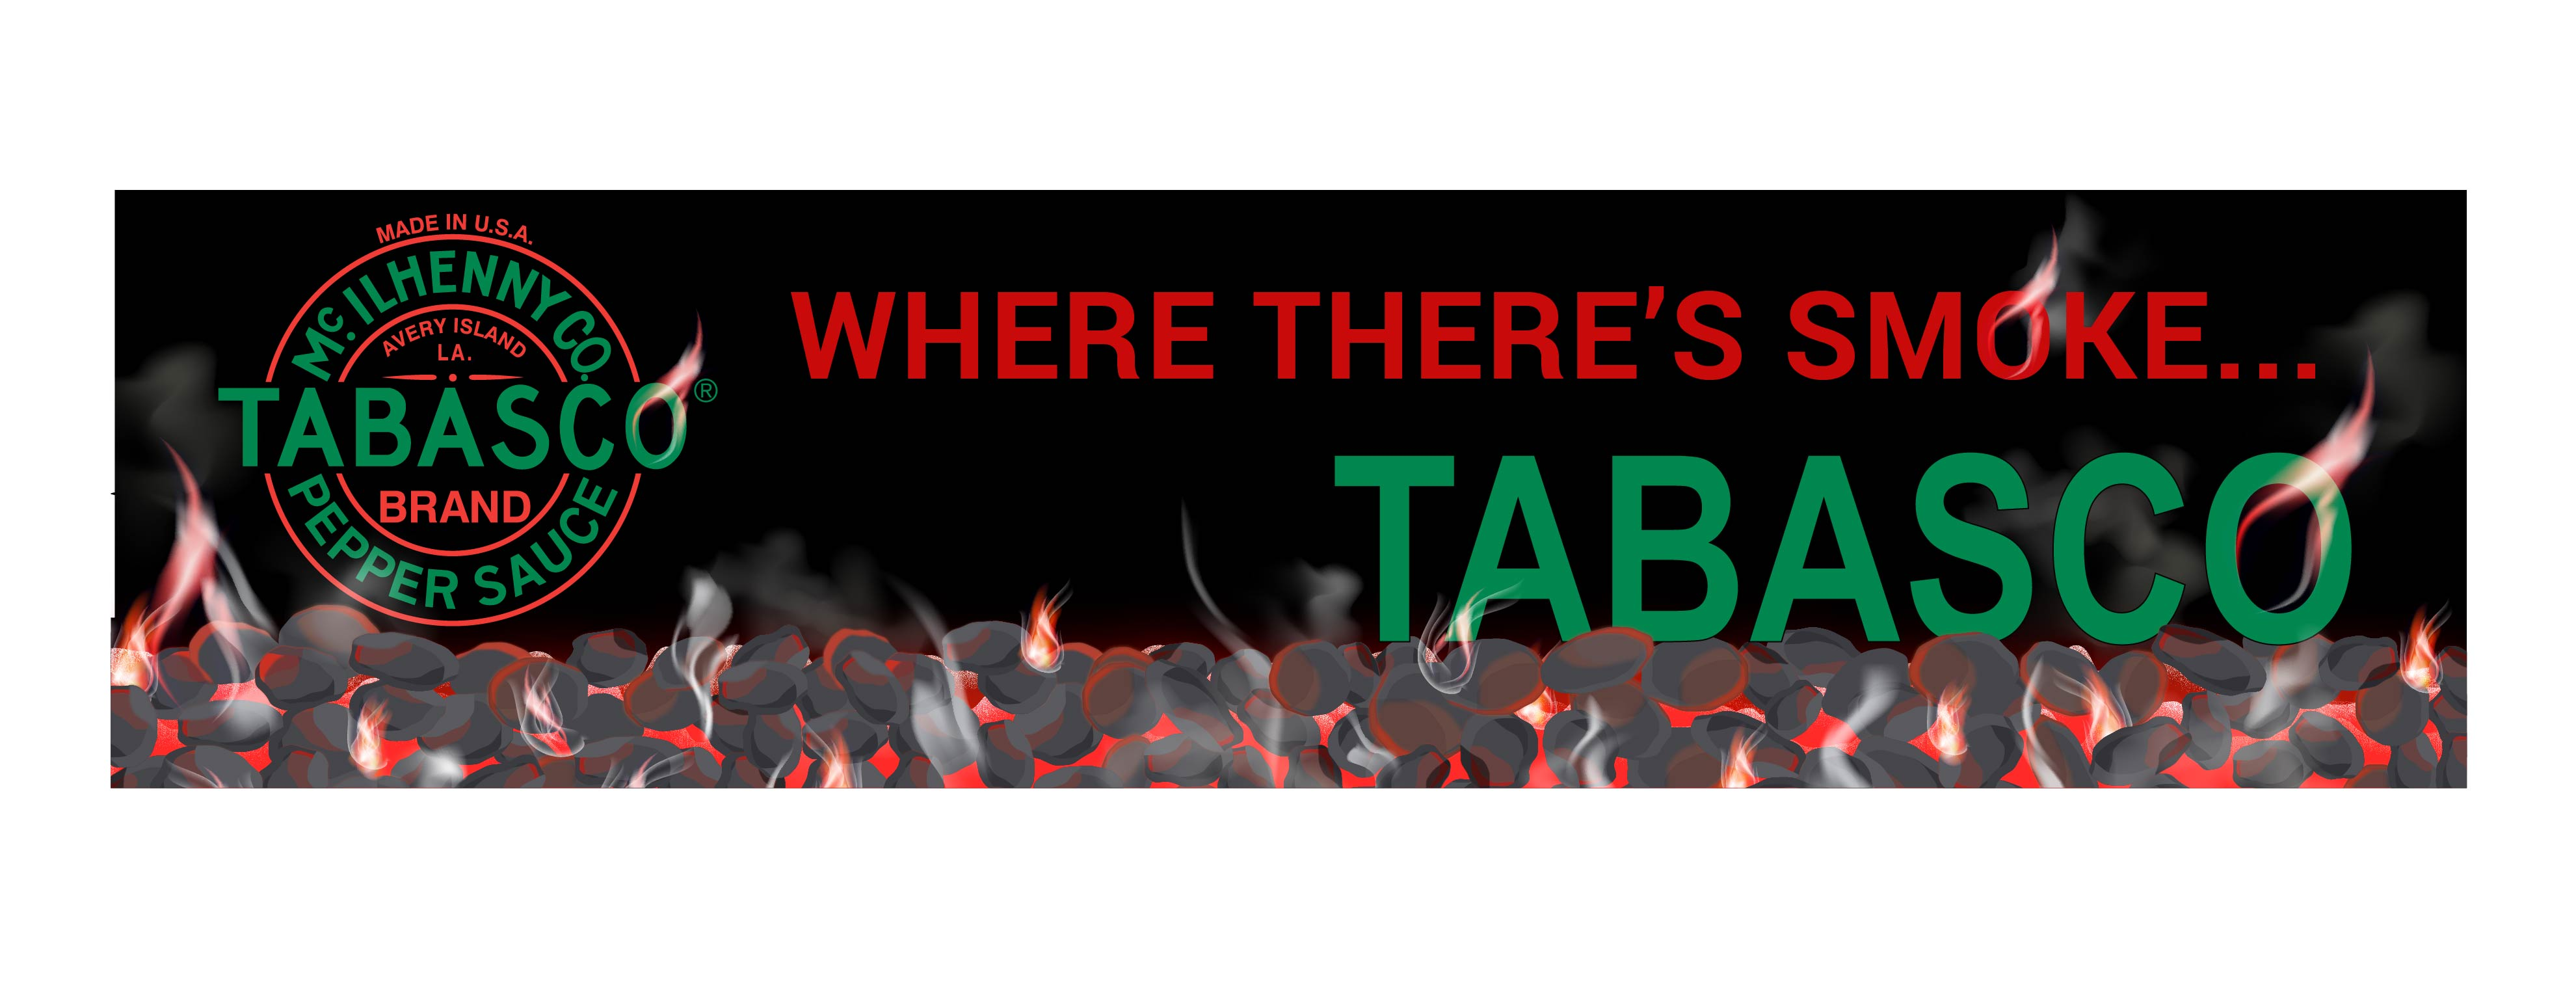 Tabasco billboard